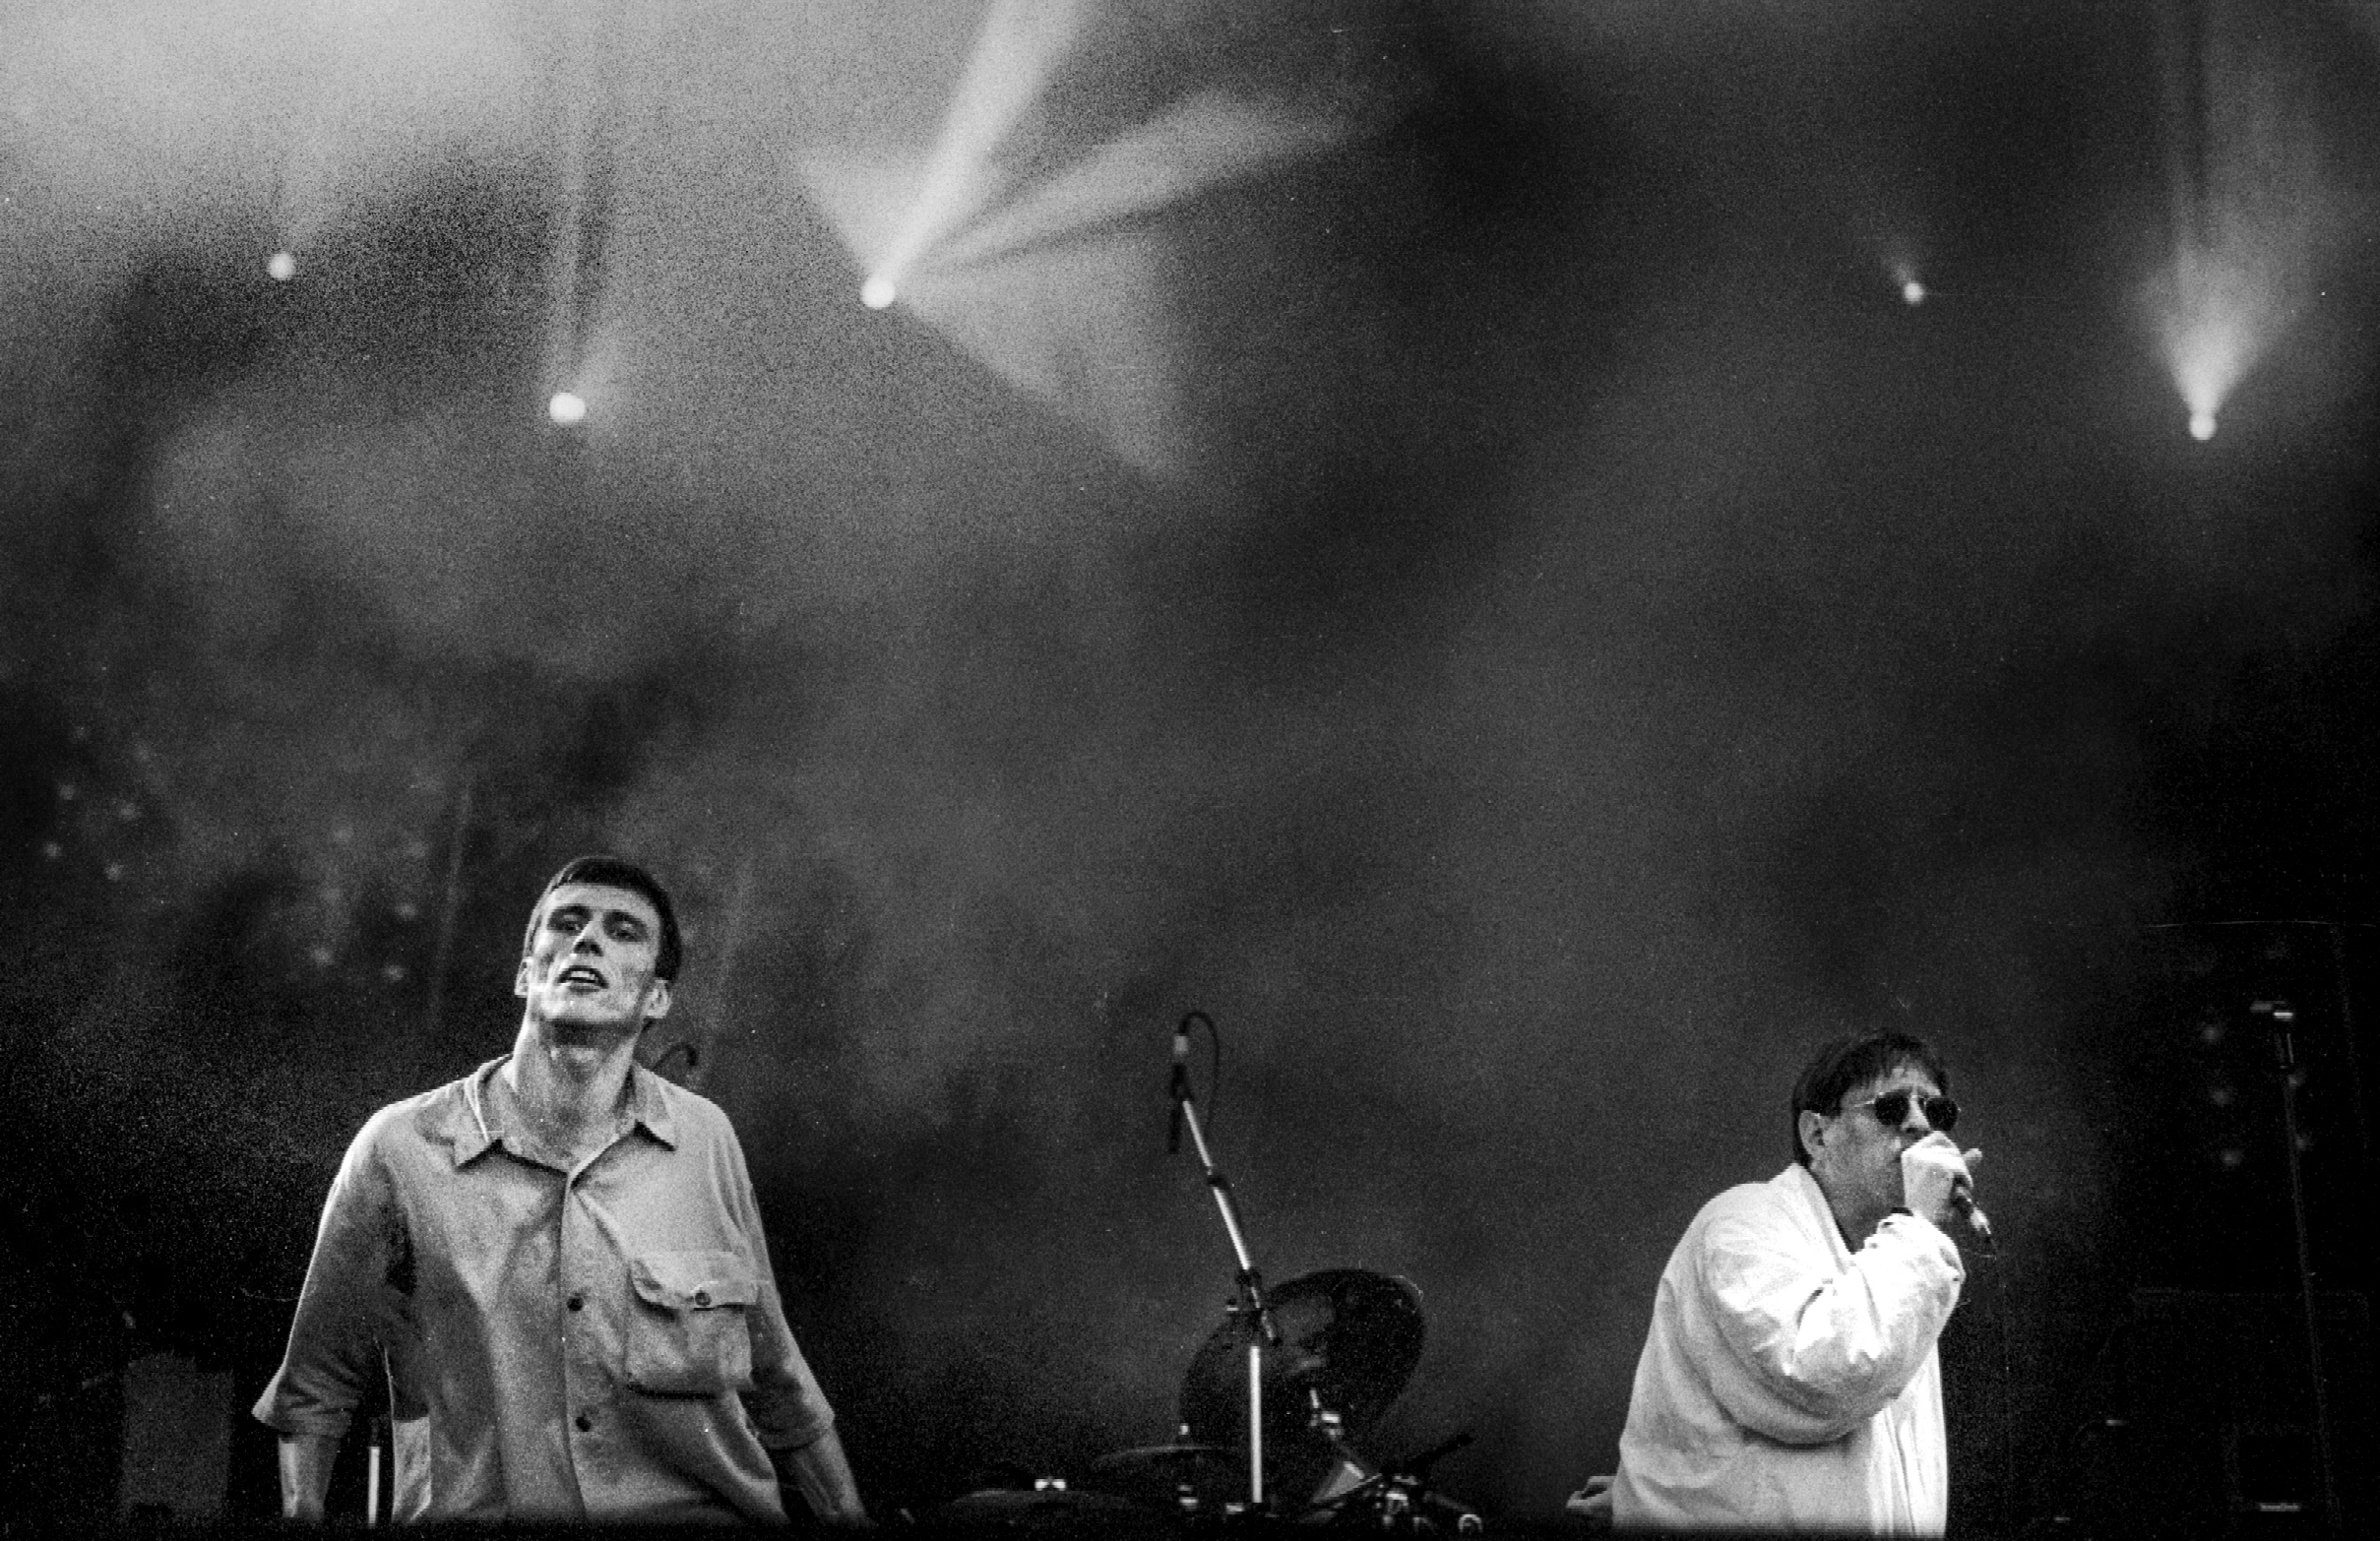 REVIEW: The Happy Mondays - The Early EPs box set